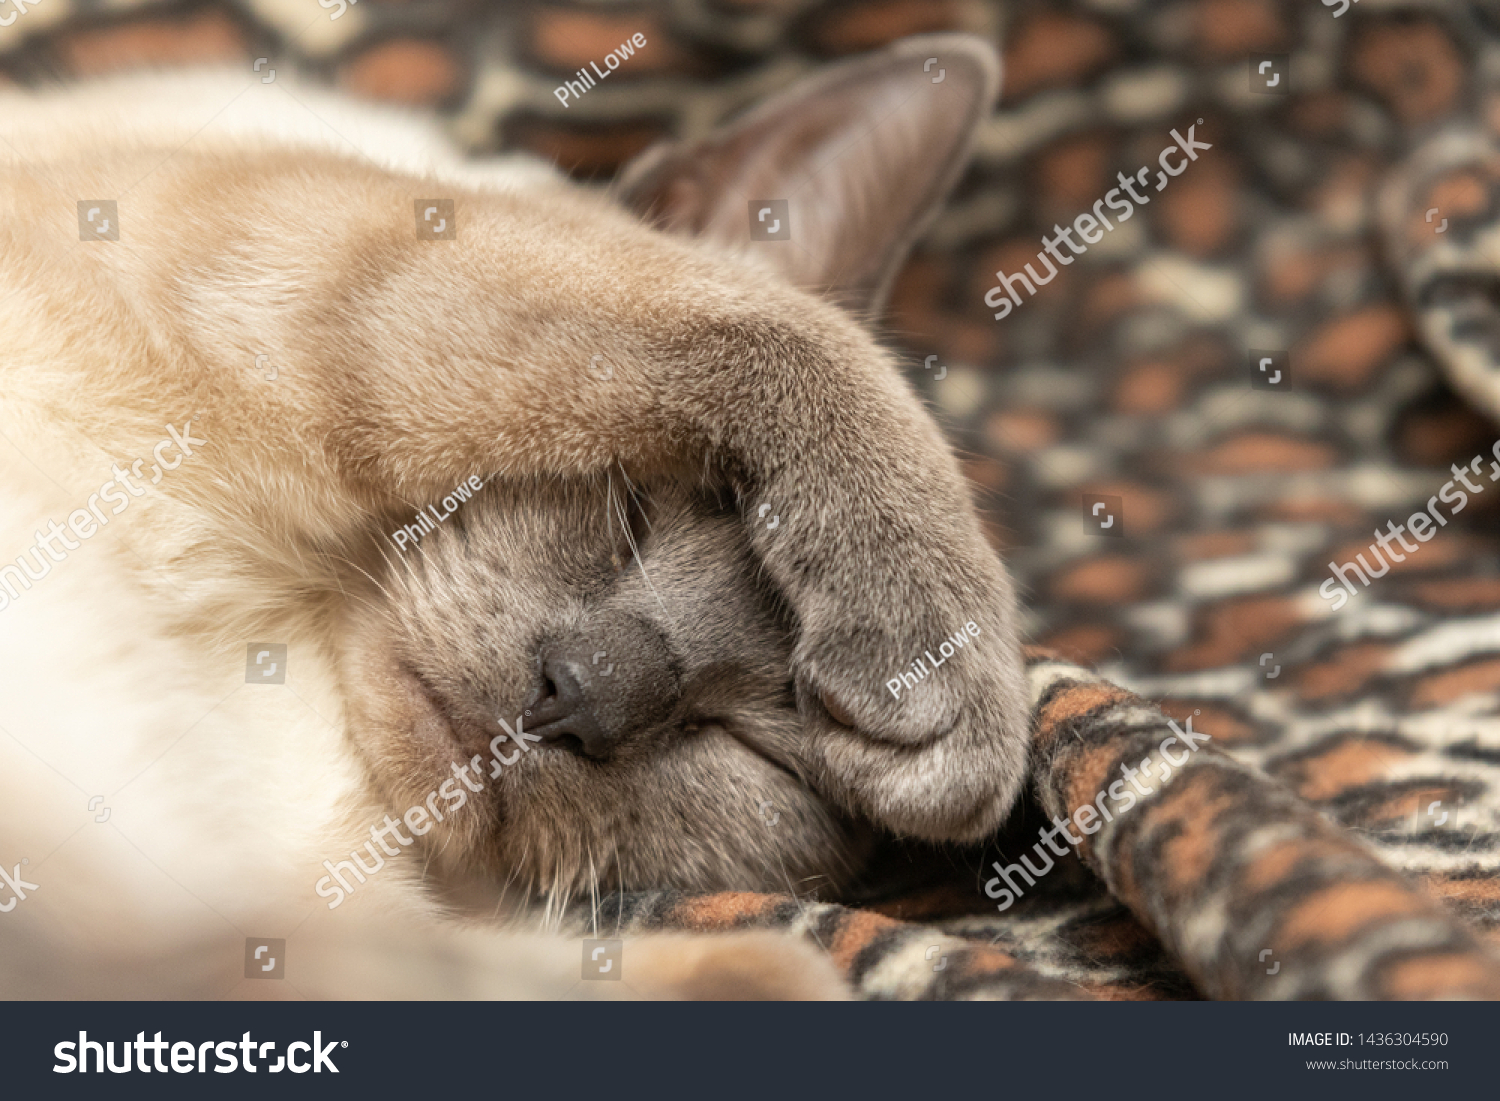 stock-photo-close-up-of-a-cute-sleeping-